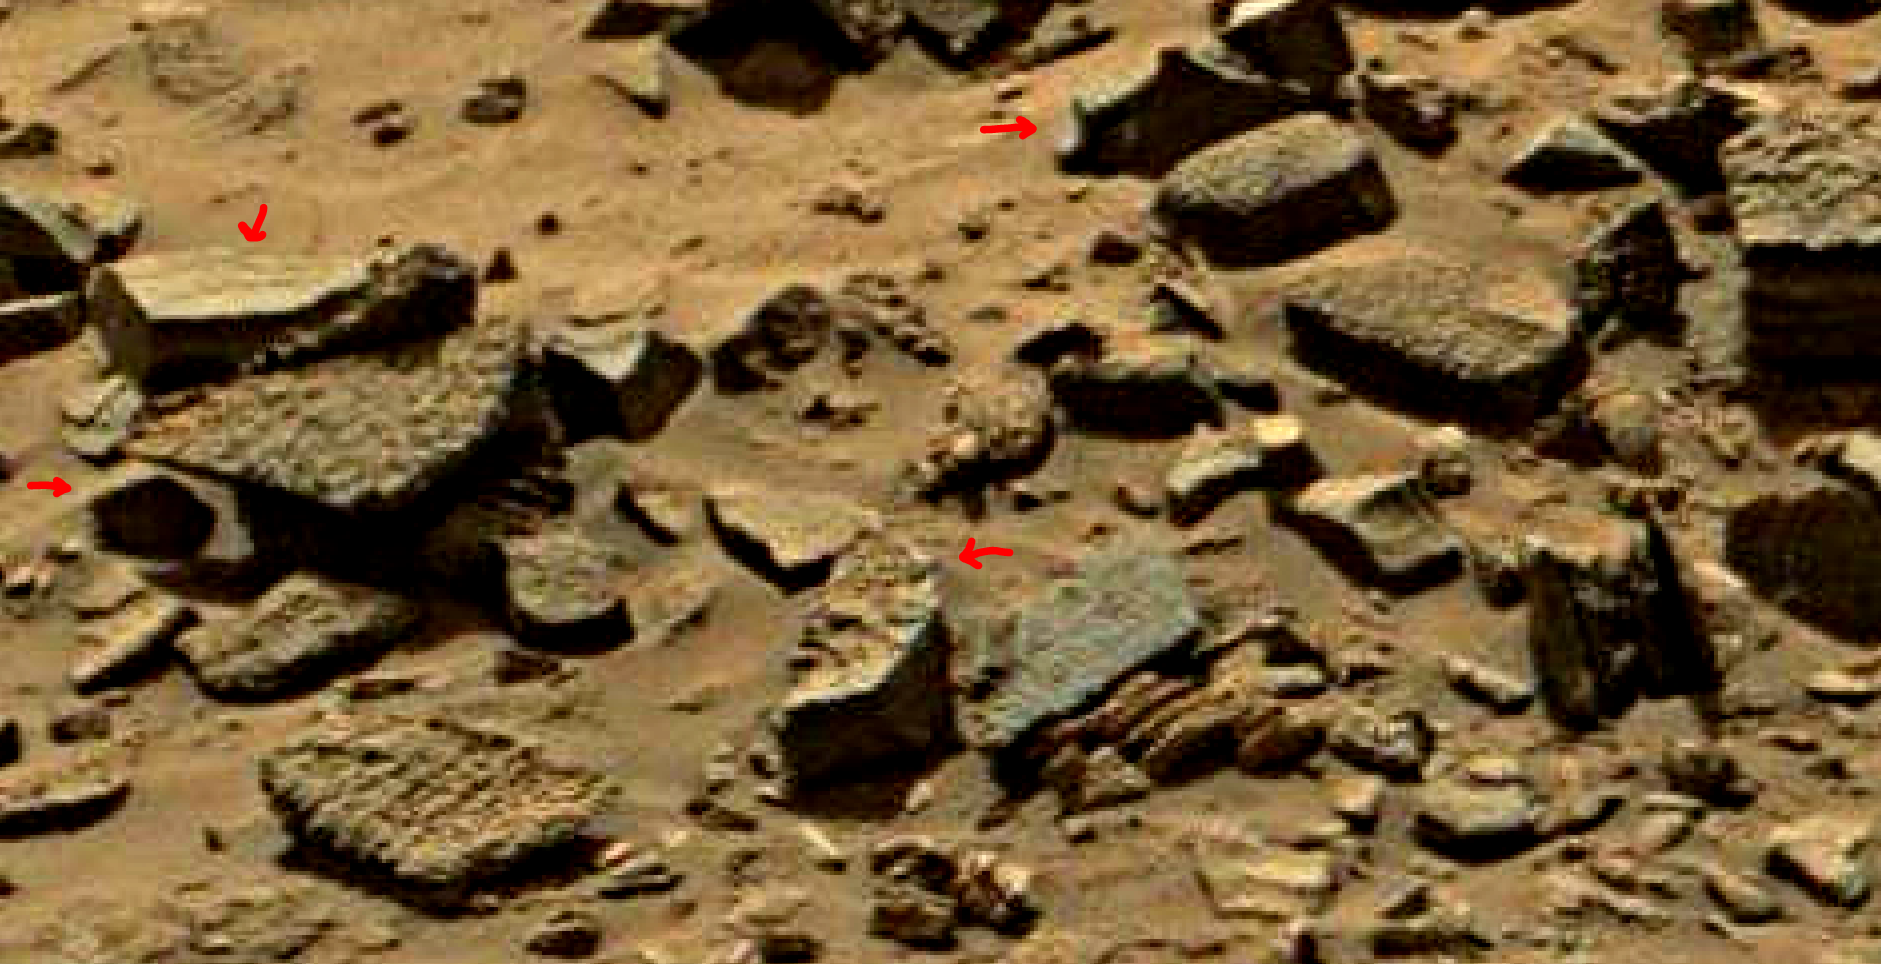 mars sol 1434 anomaly artifacts 11 was life on mars